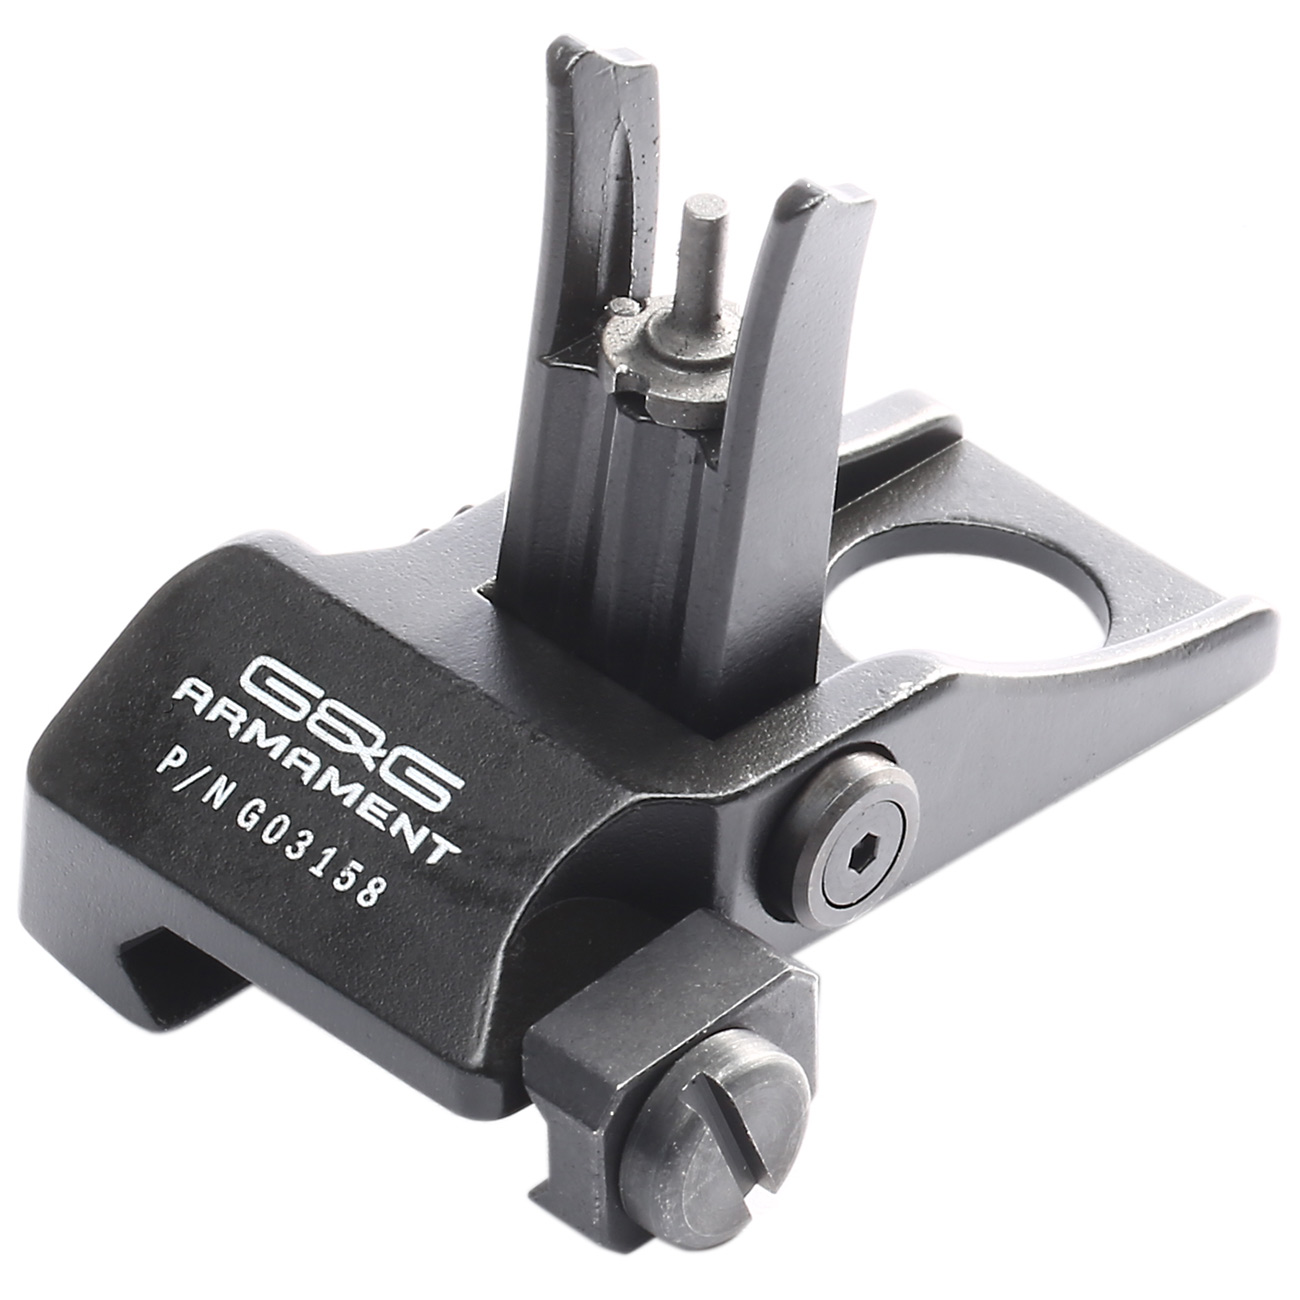 G&G Flip-Up Type-2 Sight Set Front / Rear für 21mm Schienen schwarz 3